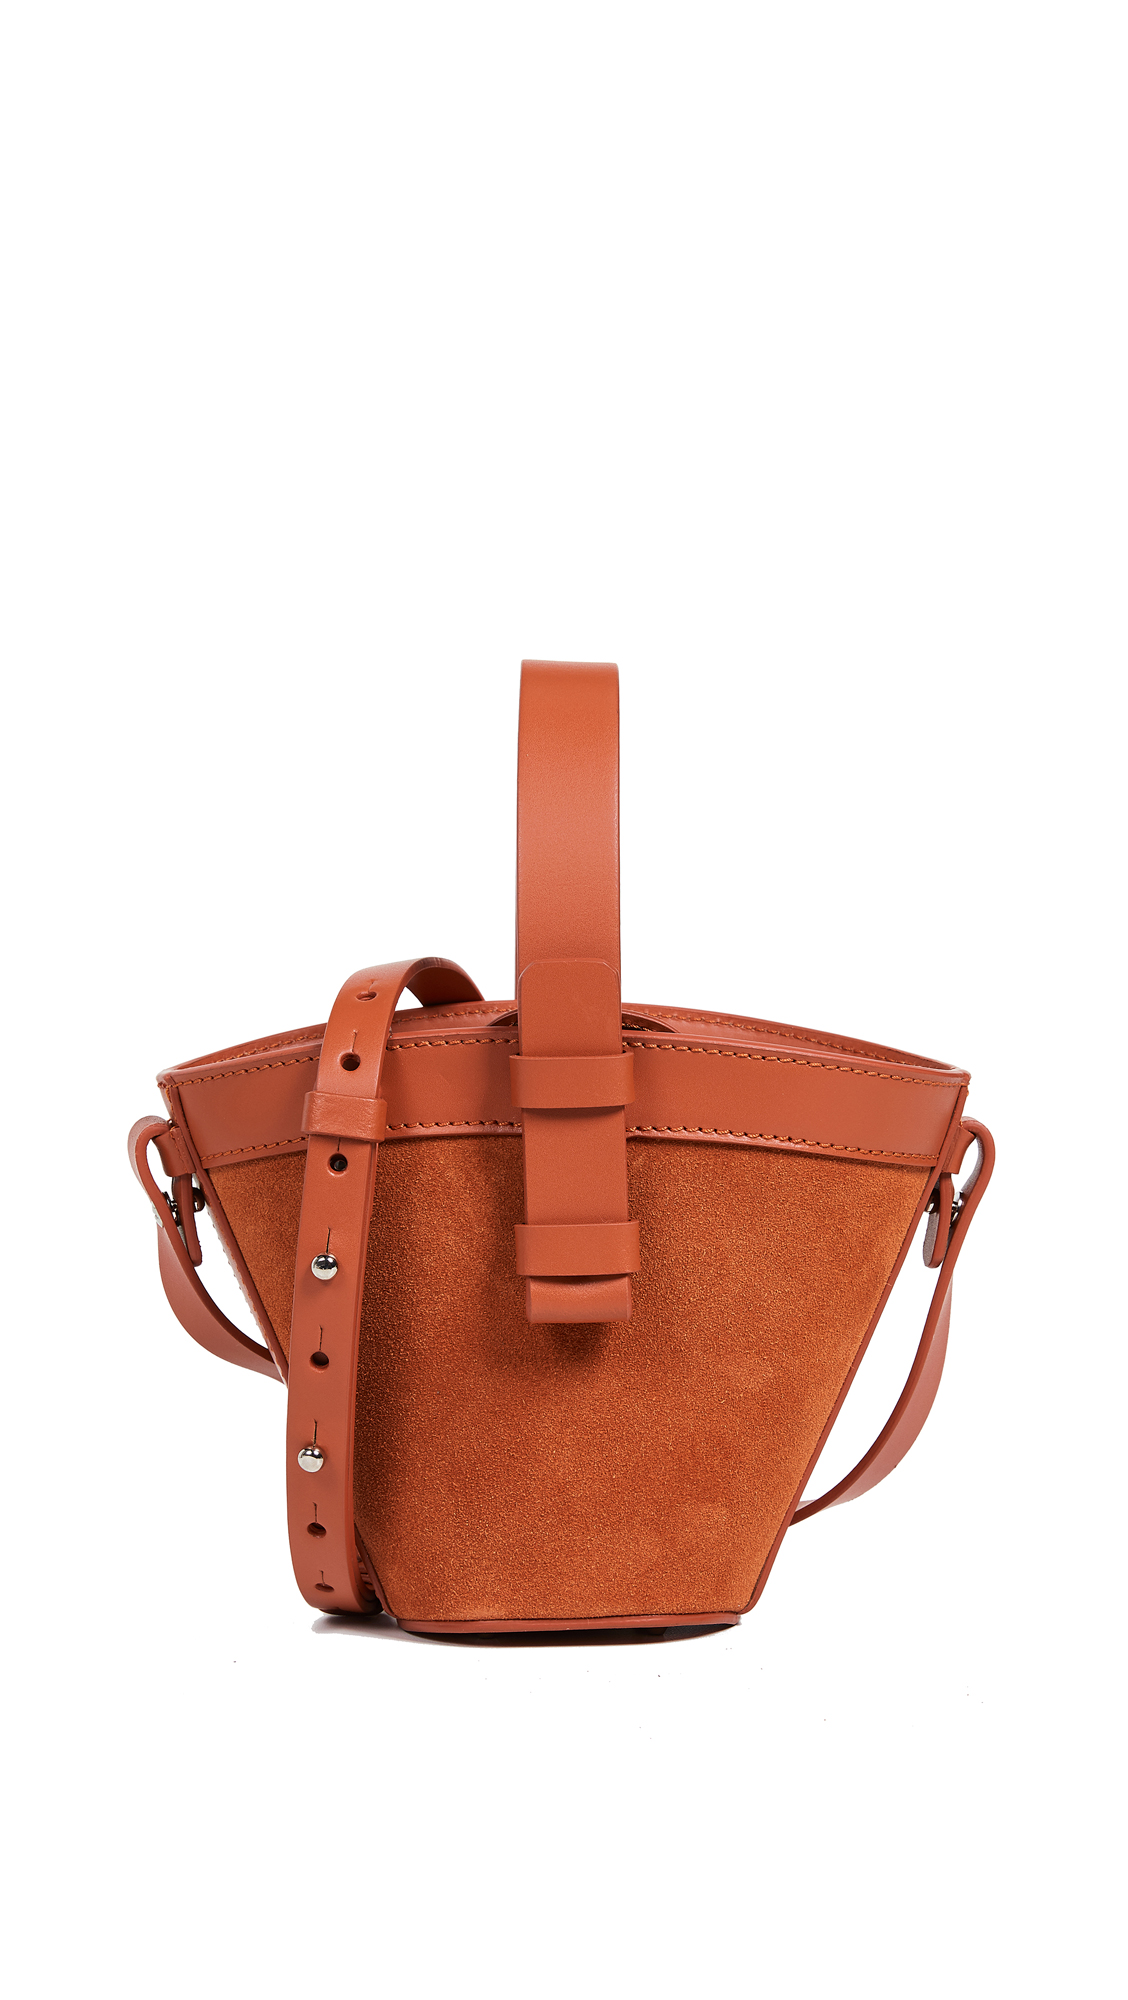 NICO GIANI NELIA MINI BUCKET BAG